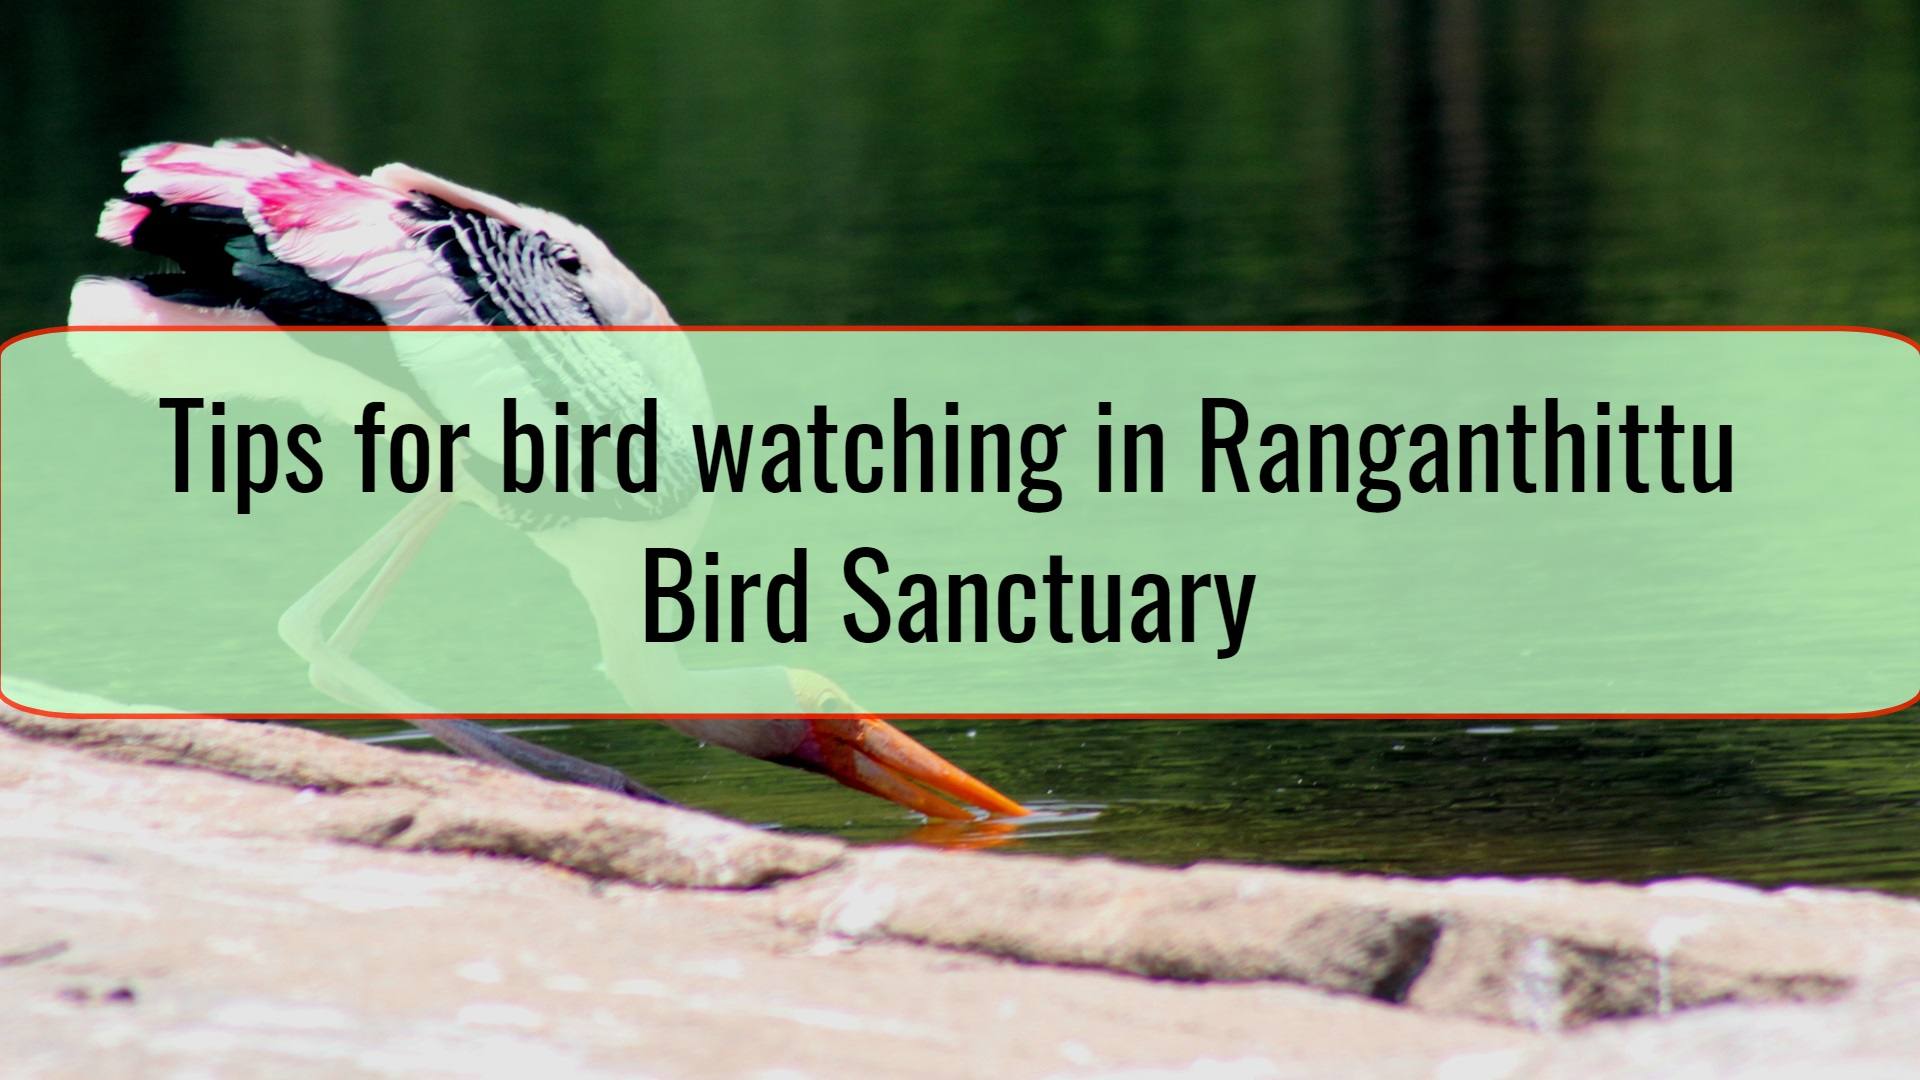 Tips for bird watching in Ranganthittu Bird Sanctuary